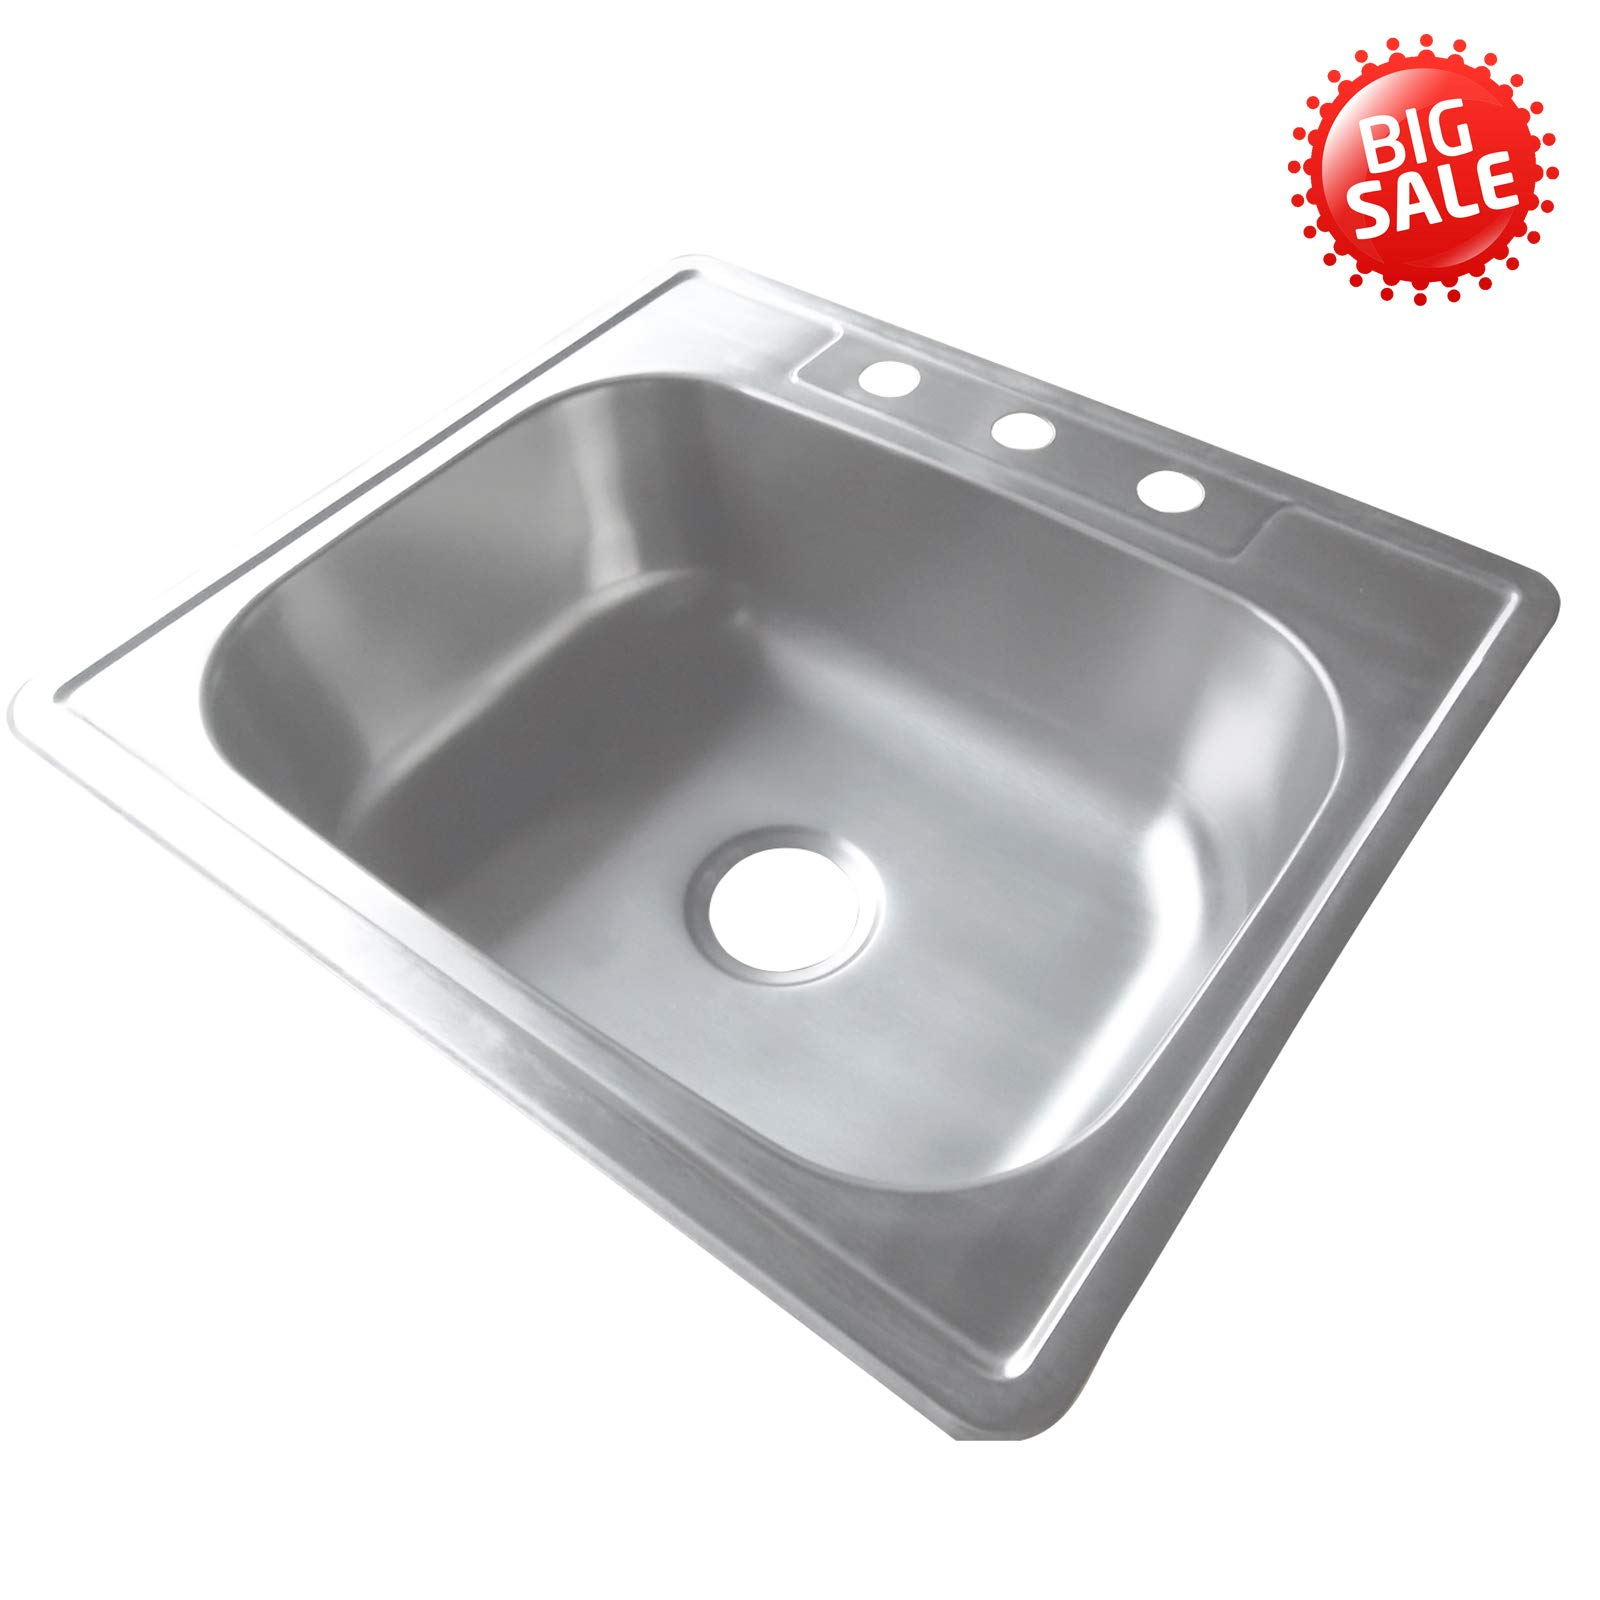 25'' Kitchen Sink Top Mounted Sink Single Bowl Modern Stainless Steel 18 Gauge for 3 Holes Faucet